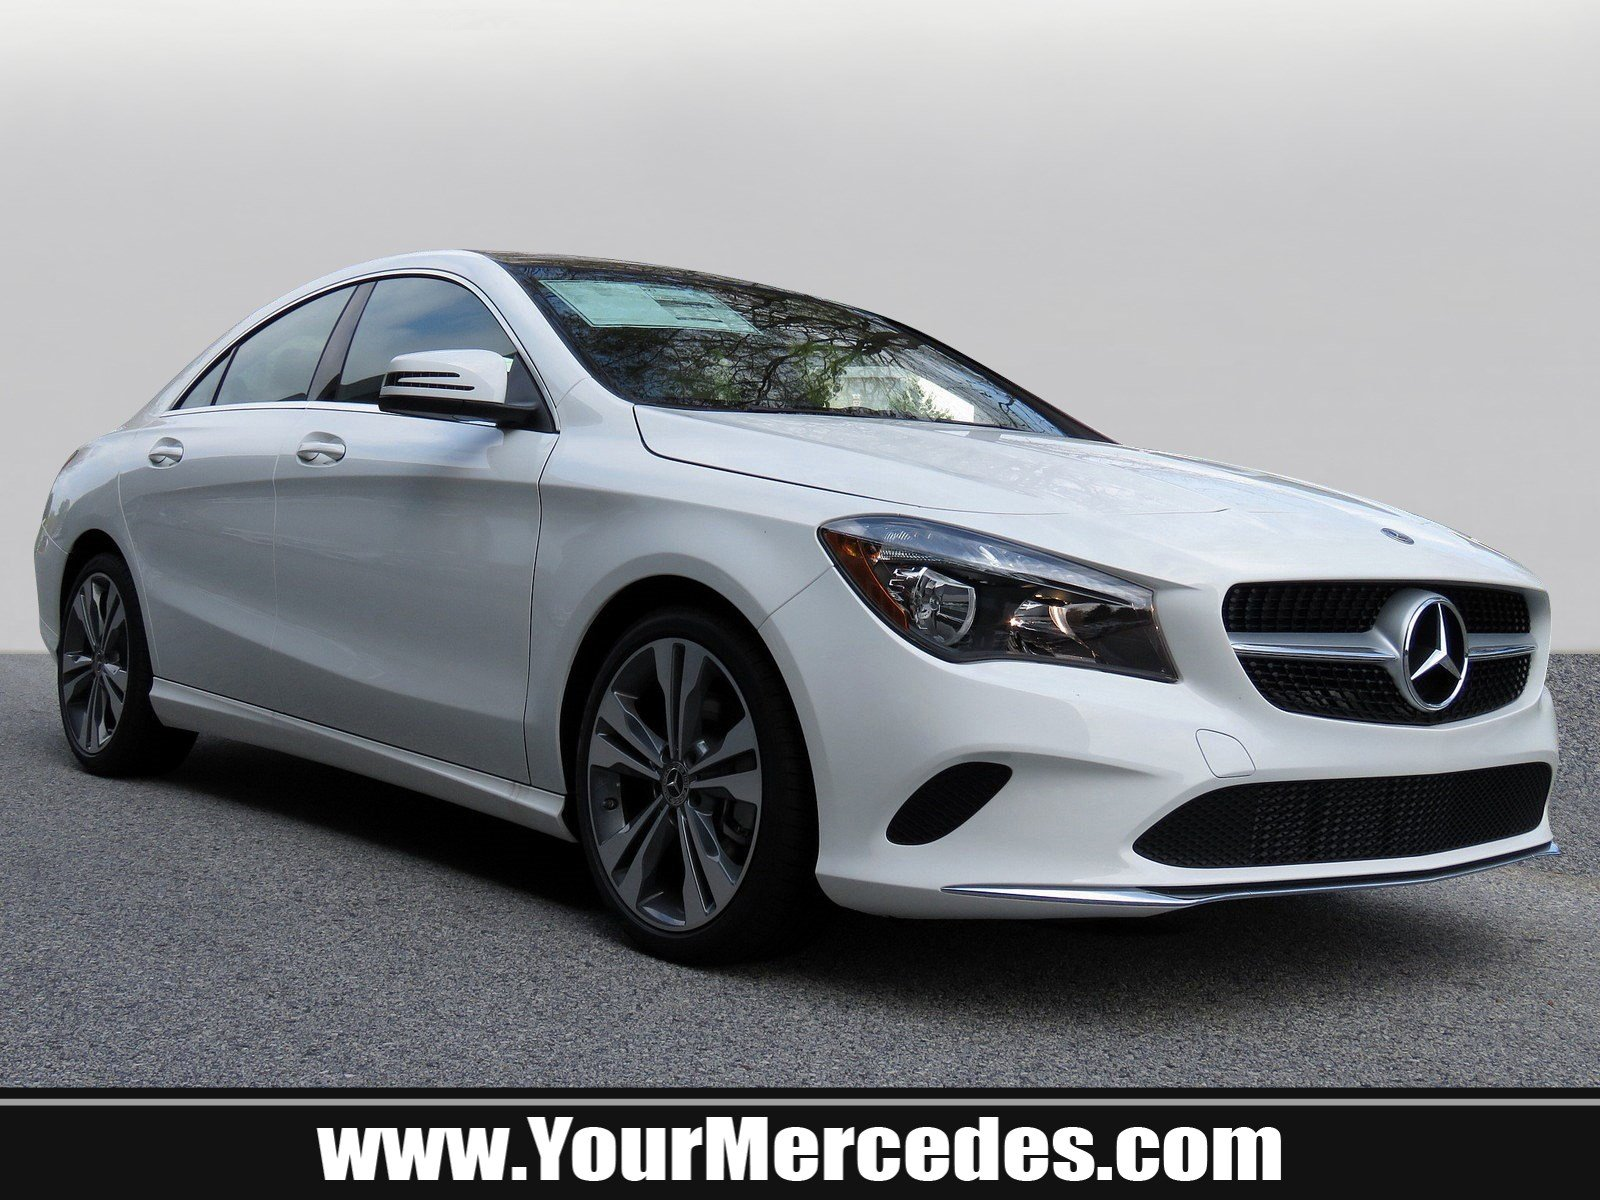 New 2019 Mercedes Benz CLA CLA 250 Coupe in Fort Washington